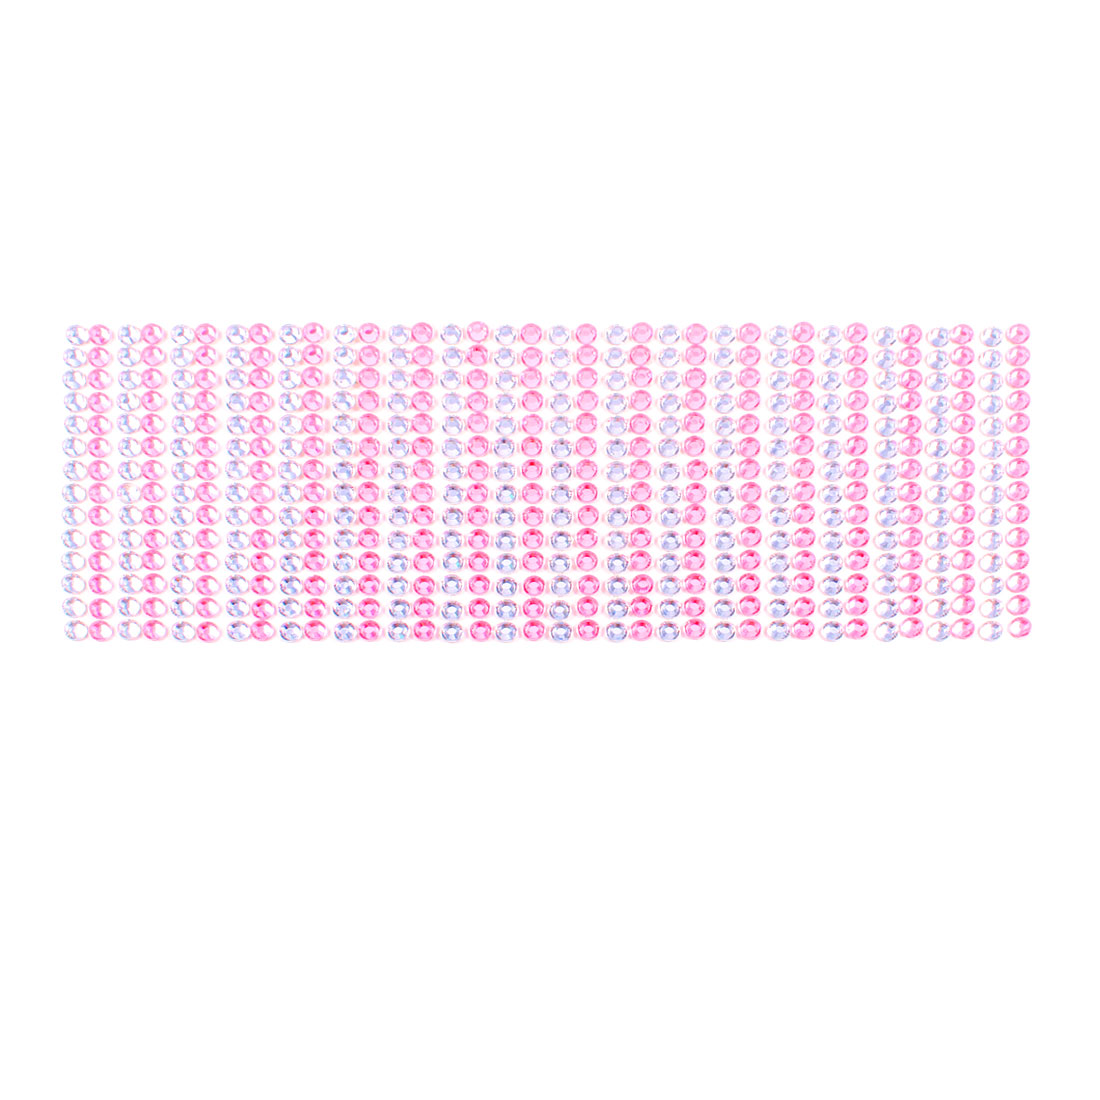 Decorative Pink Clear Glistening Rhinestones Vehicles Car Phone Sticker 38 in 1